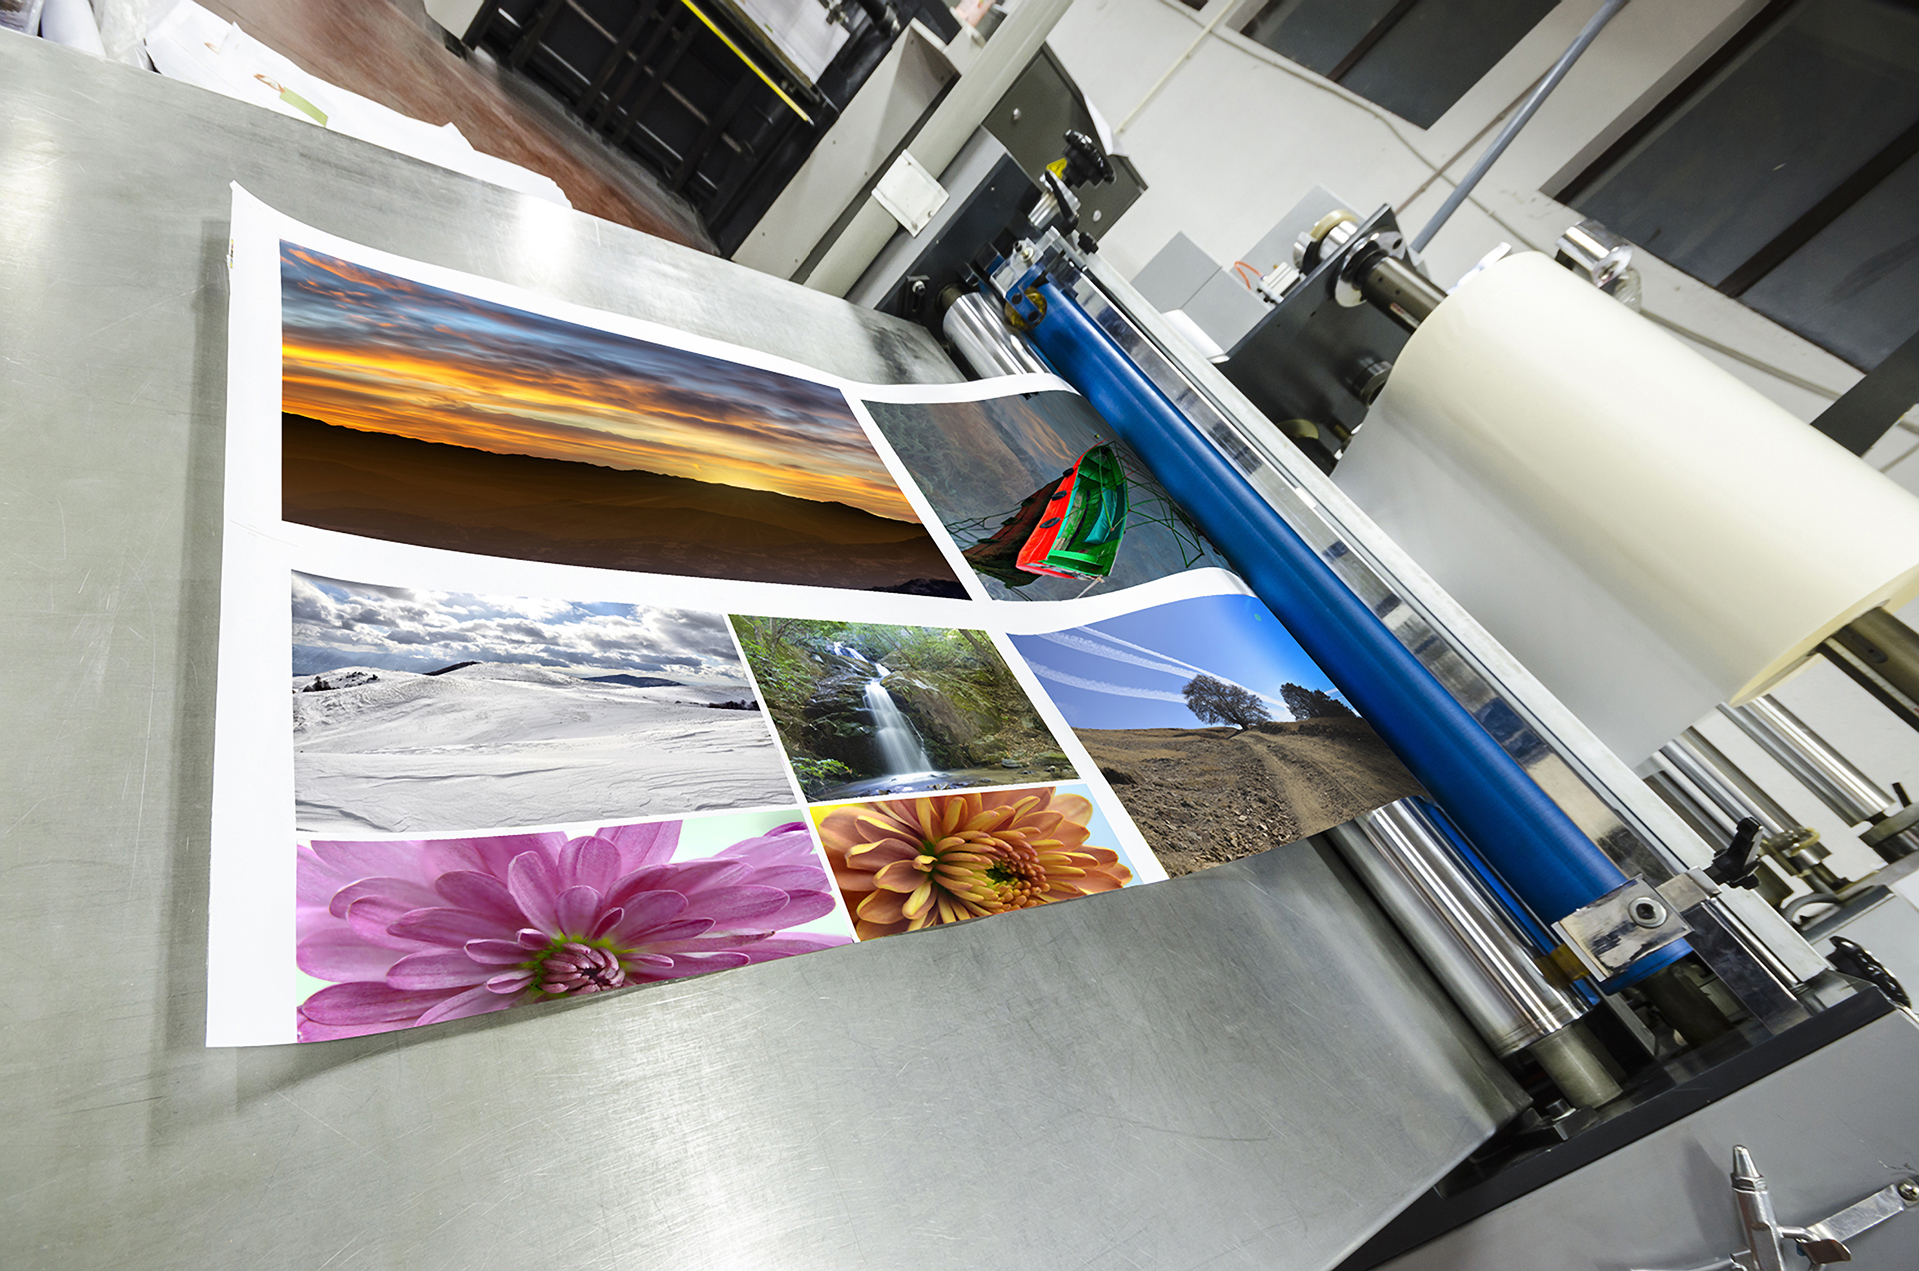 Color printing colorado springs - Home_image1